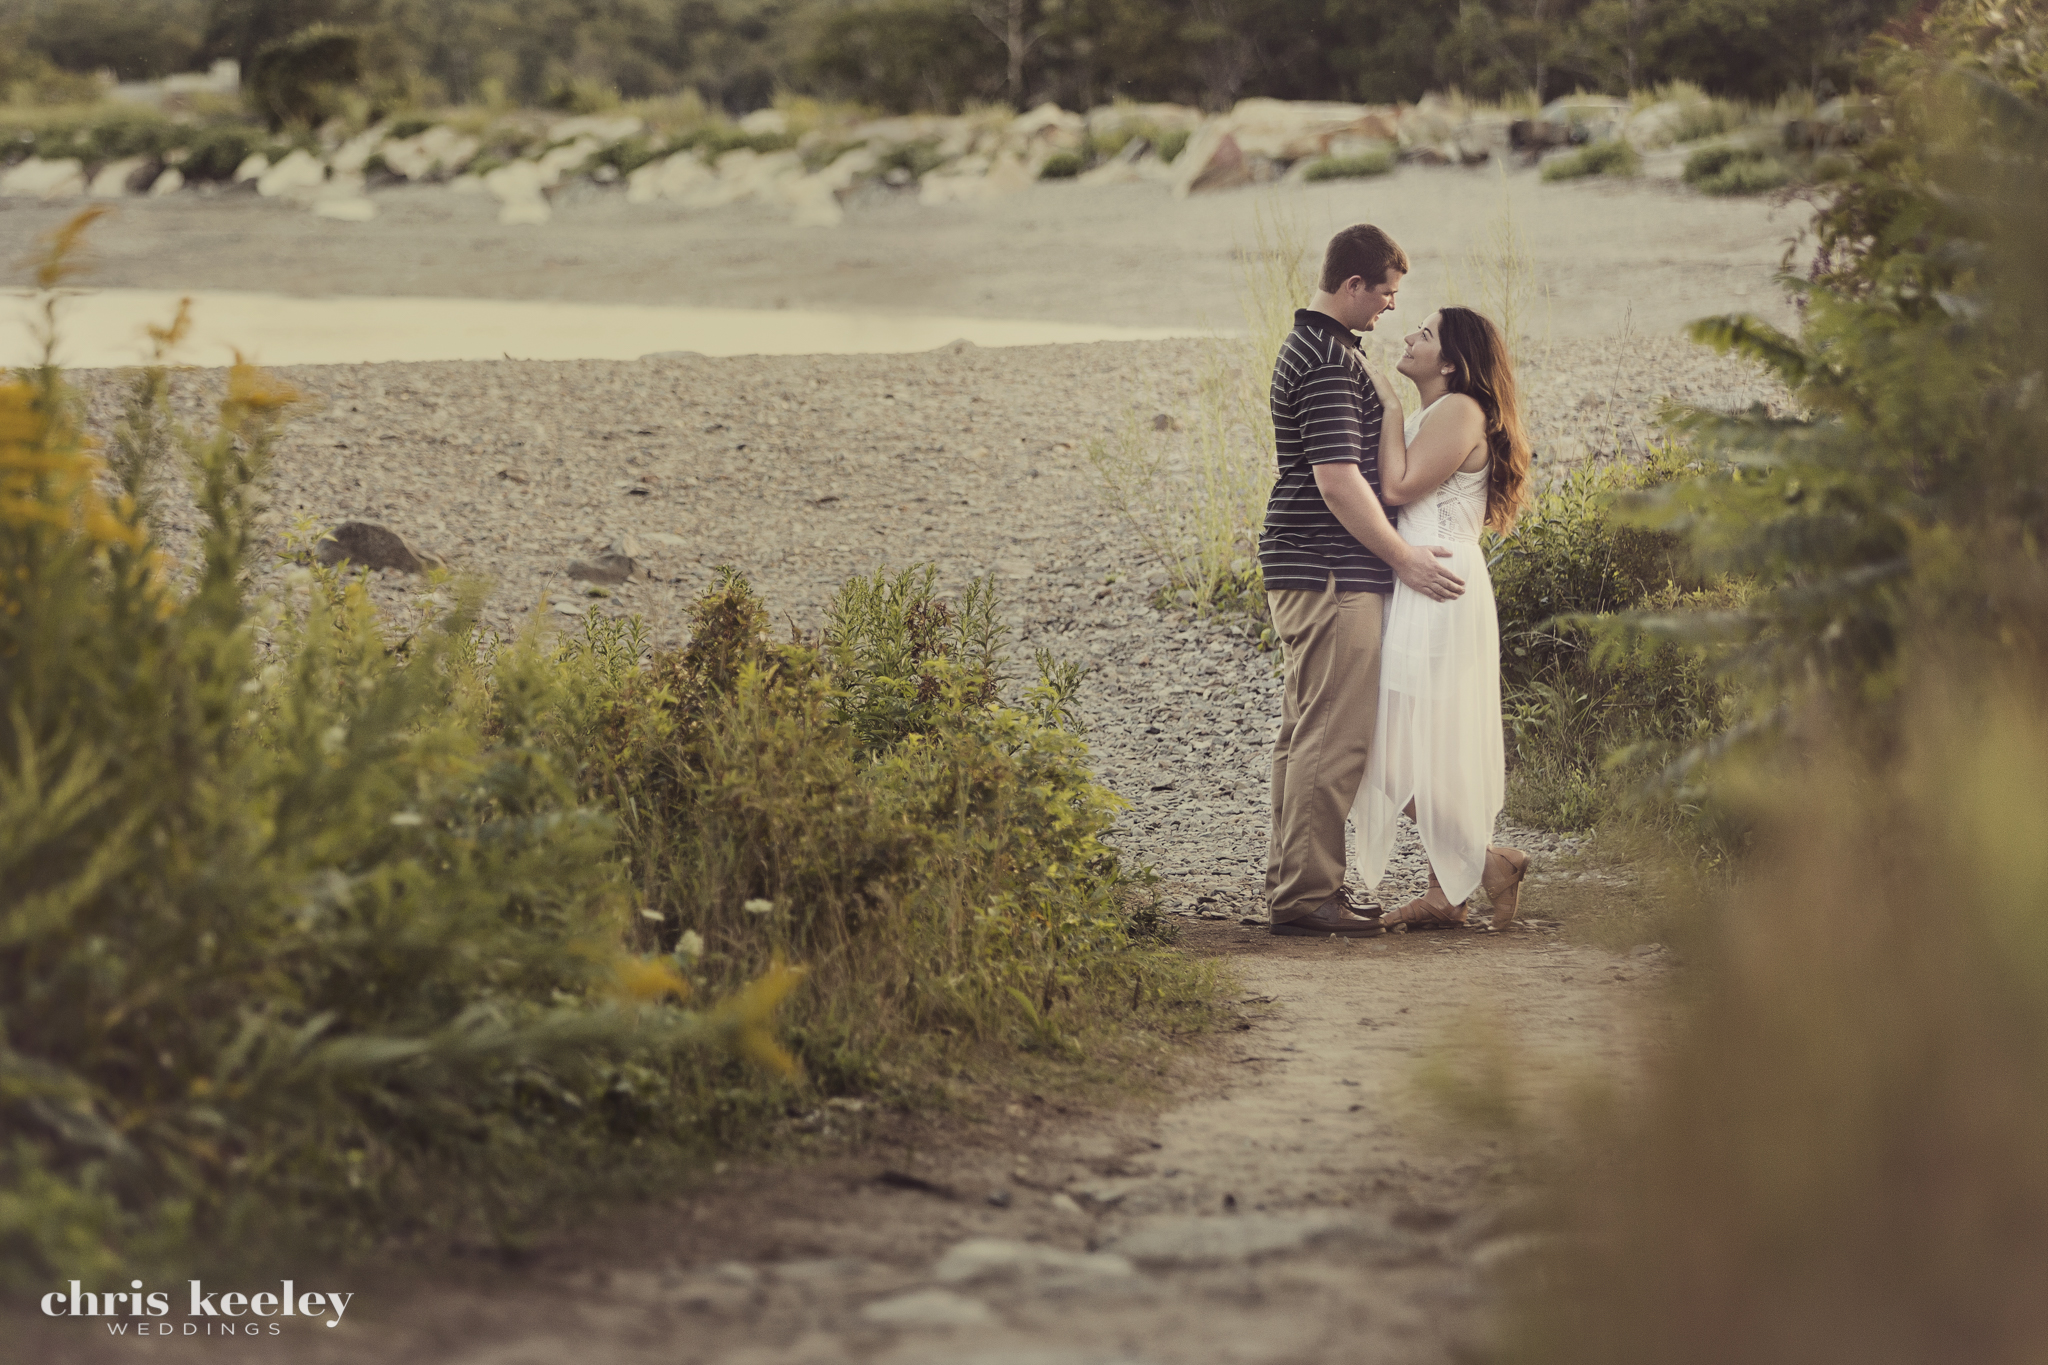 68-engagement-wedding-pictures-rye-new-hampshire-chris-keeley-weddings.jpg